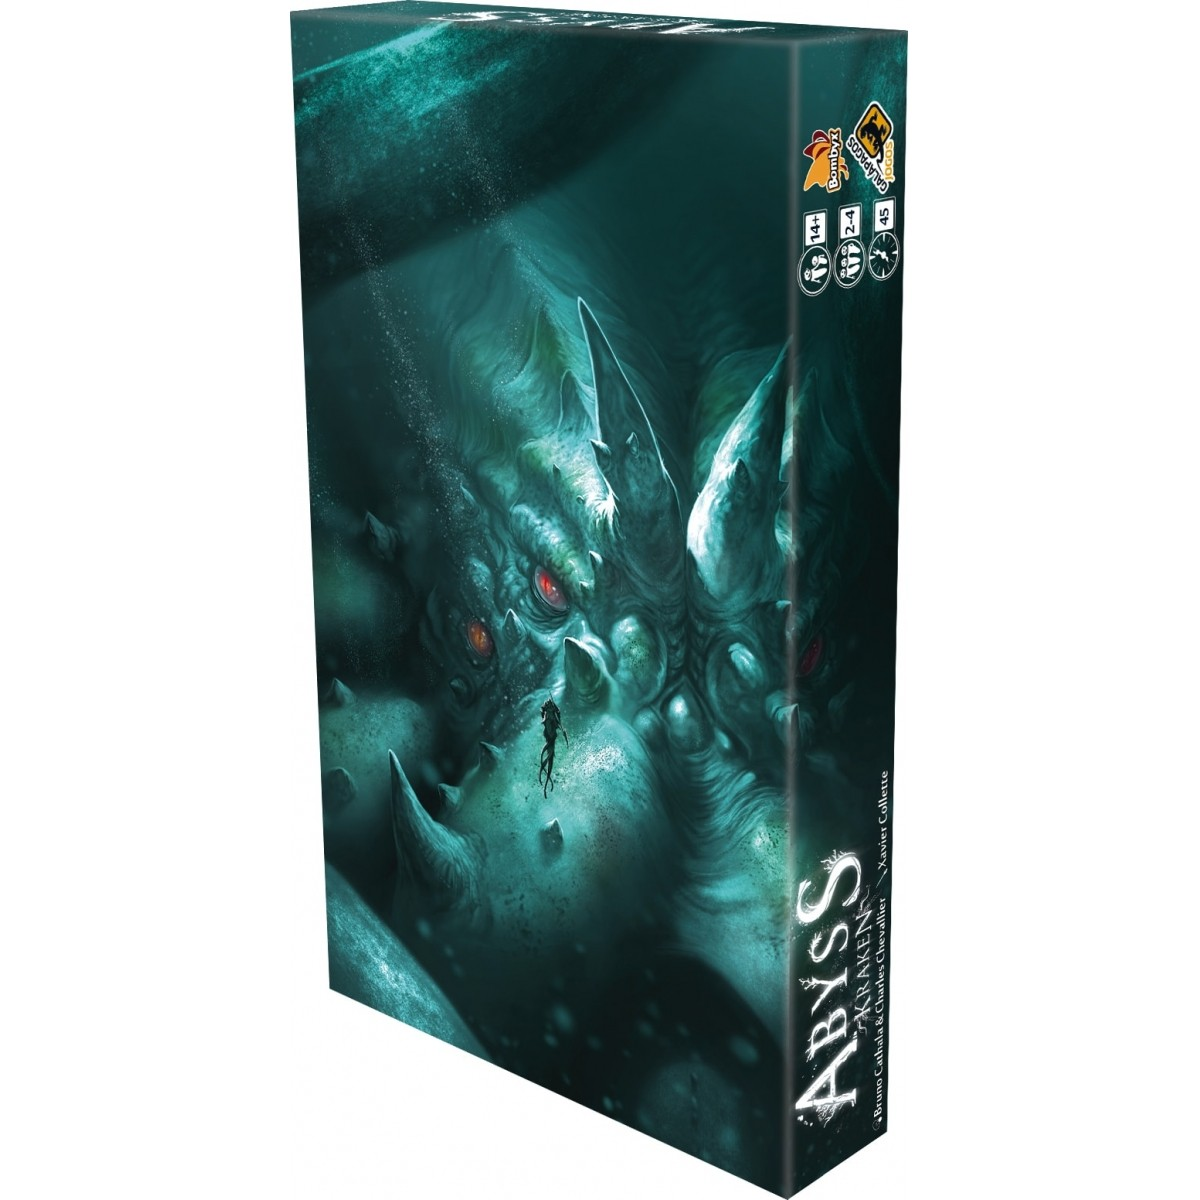 Abyss Expansão Kraken Expansão Galapagos ABY002  - Place Games